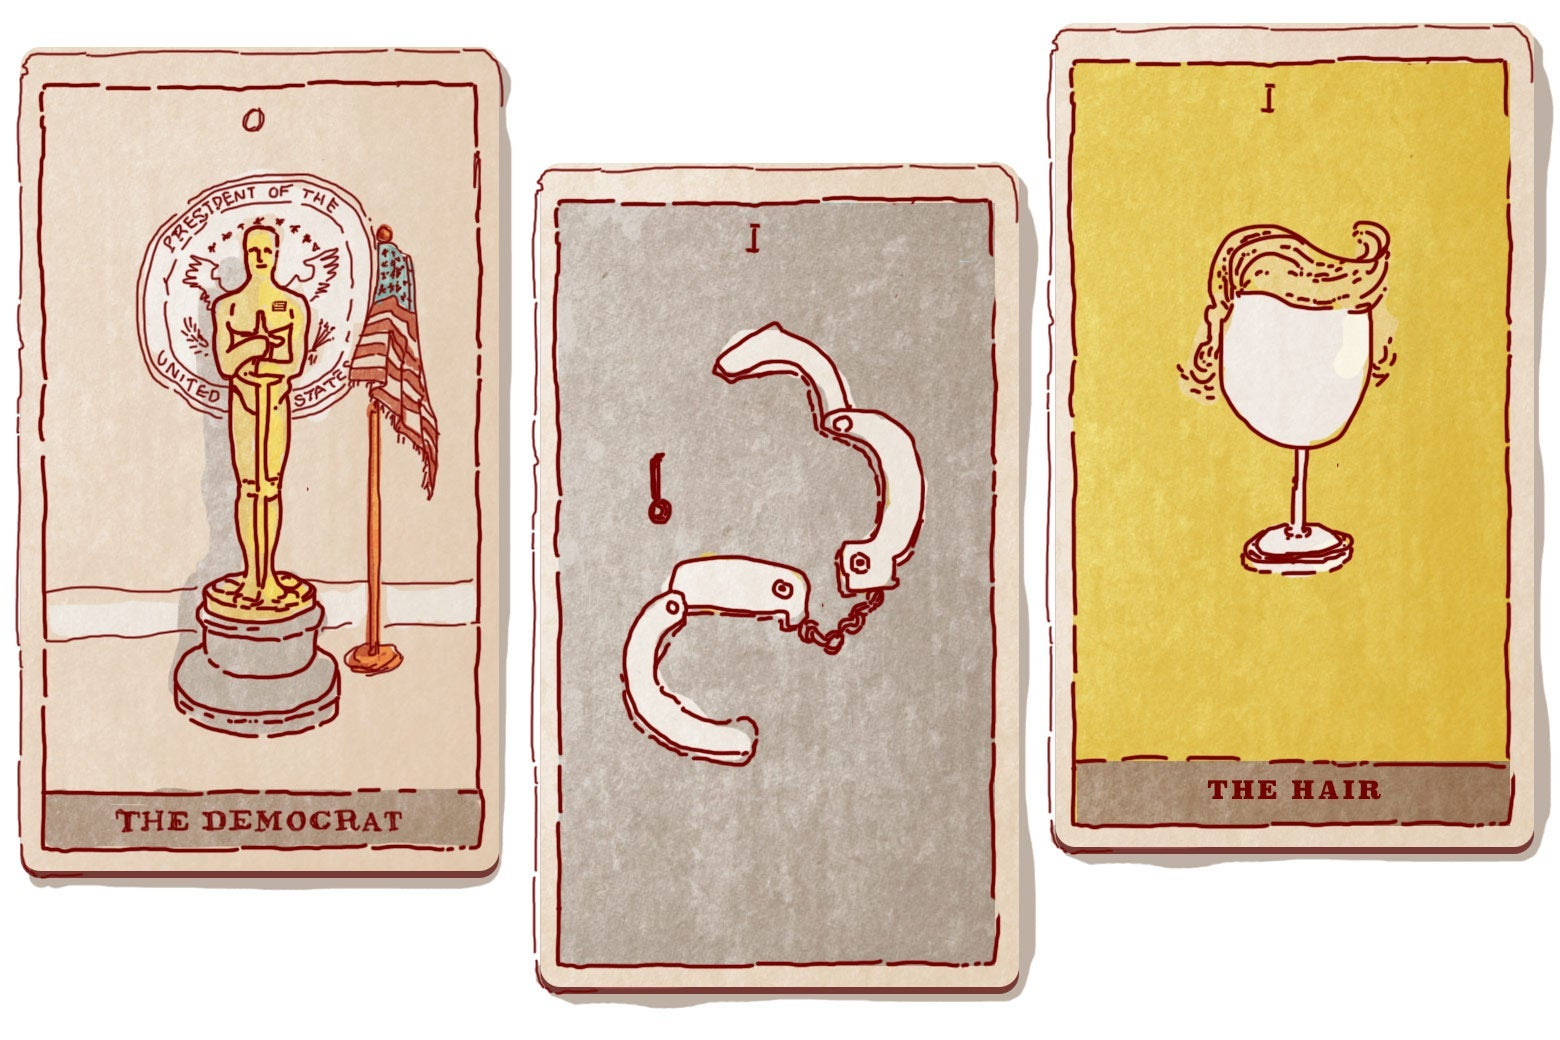 Illustration of Trump tarot cards by Natalie Matthews-Ramo.